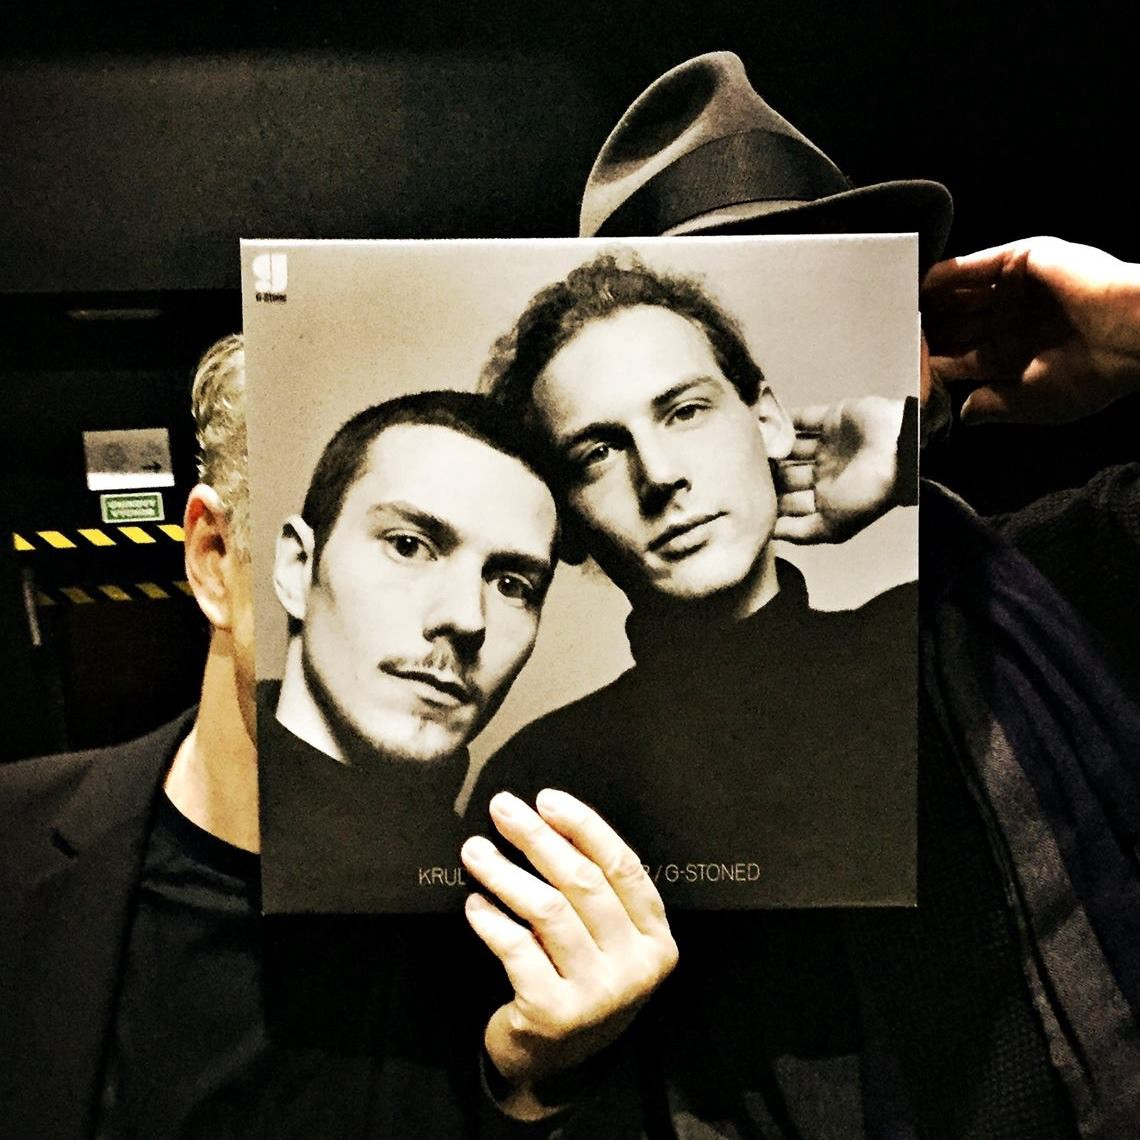 Kruder & Dorfmeister — G-Stoned. Story behind first release and creation of eponymous label | by George Palladev | 12edit | Medium